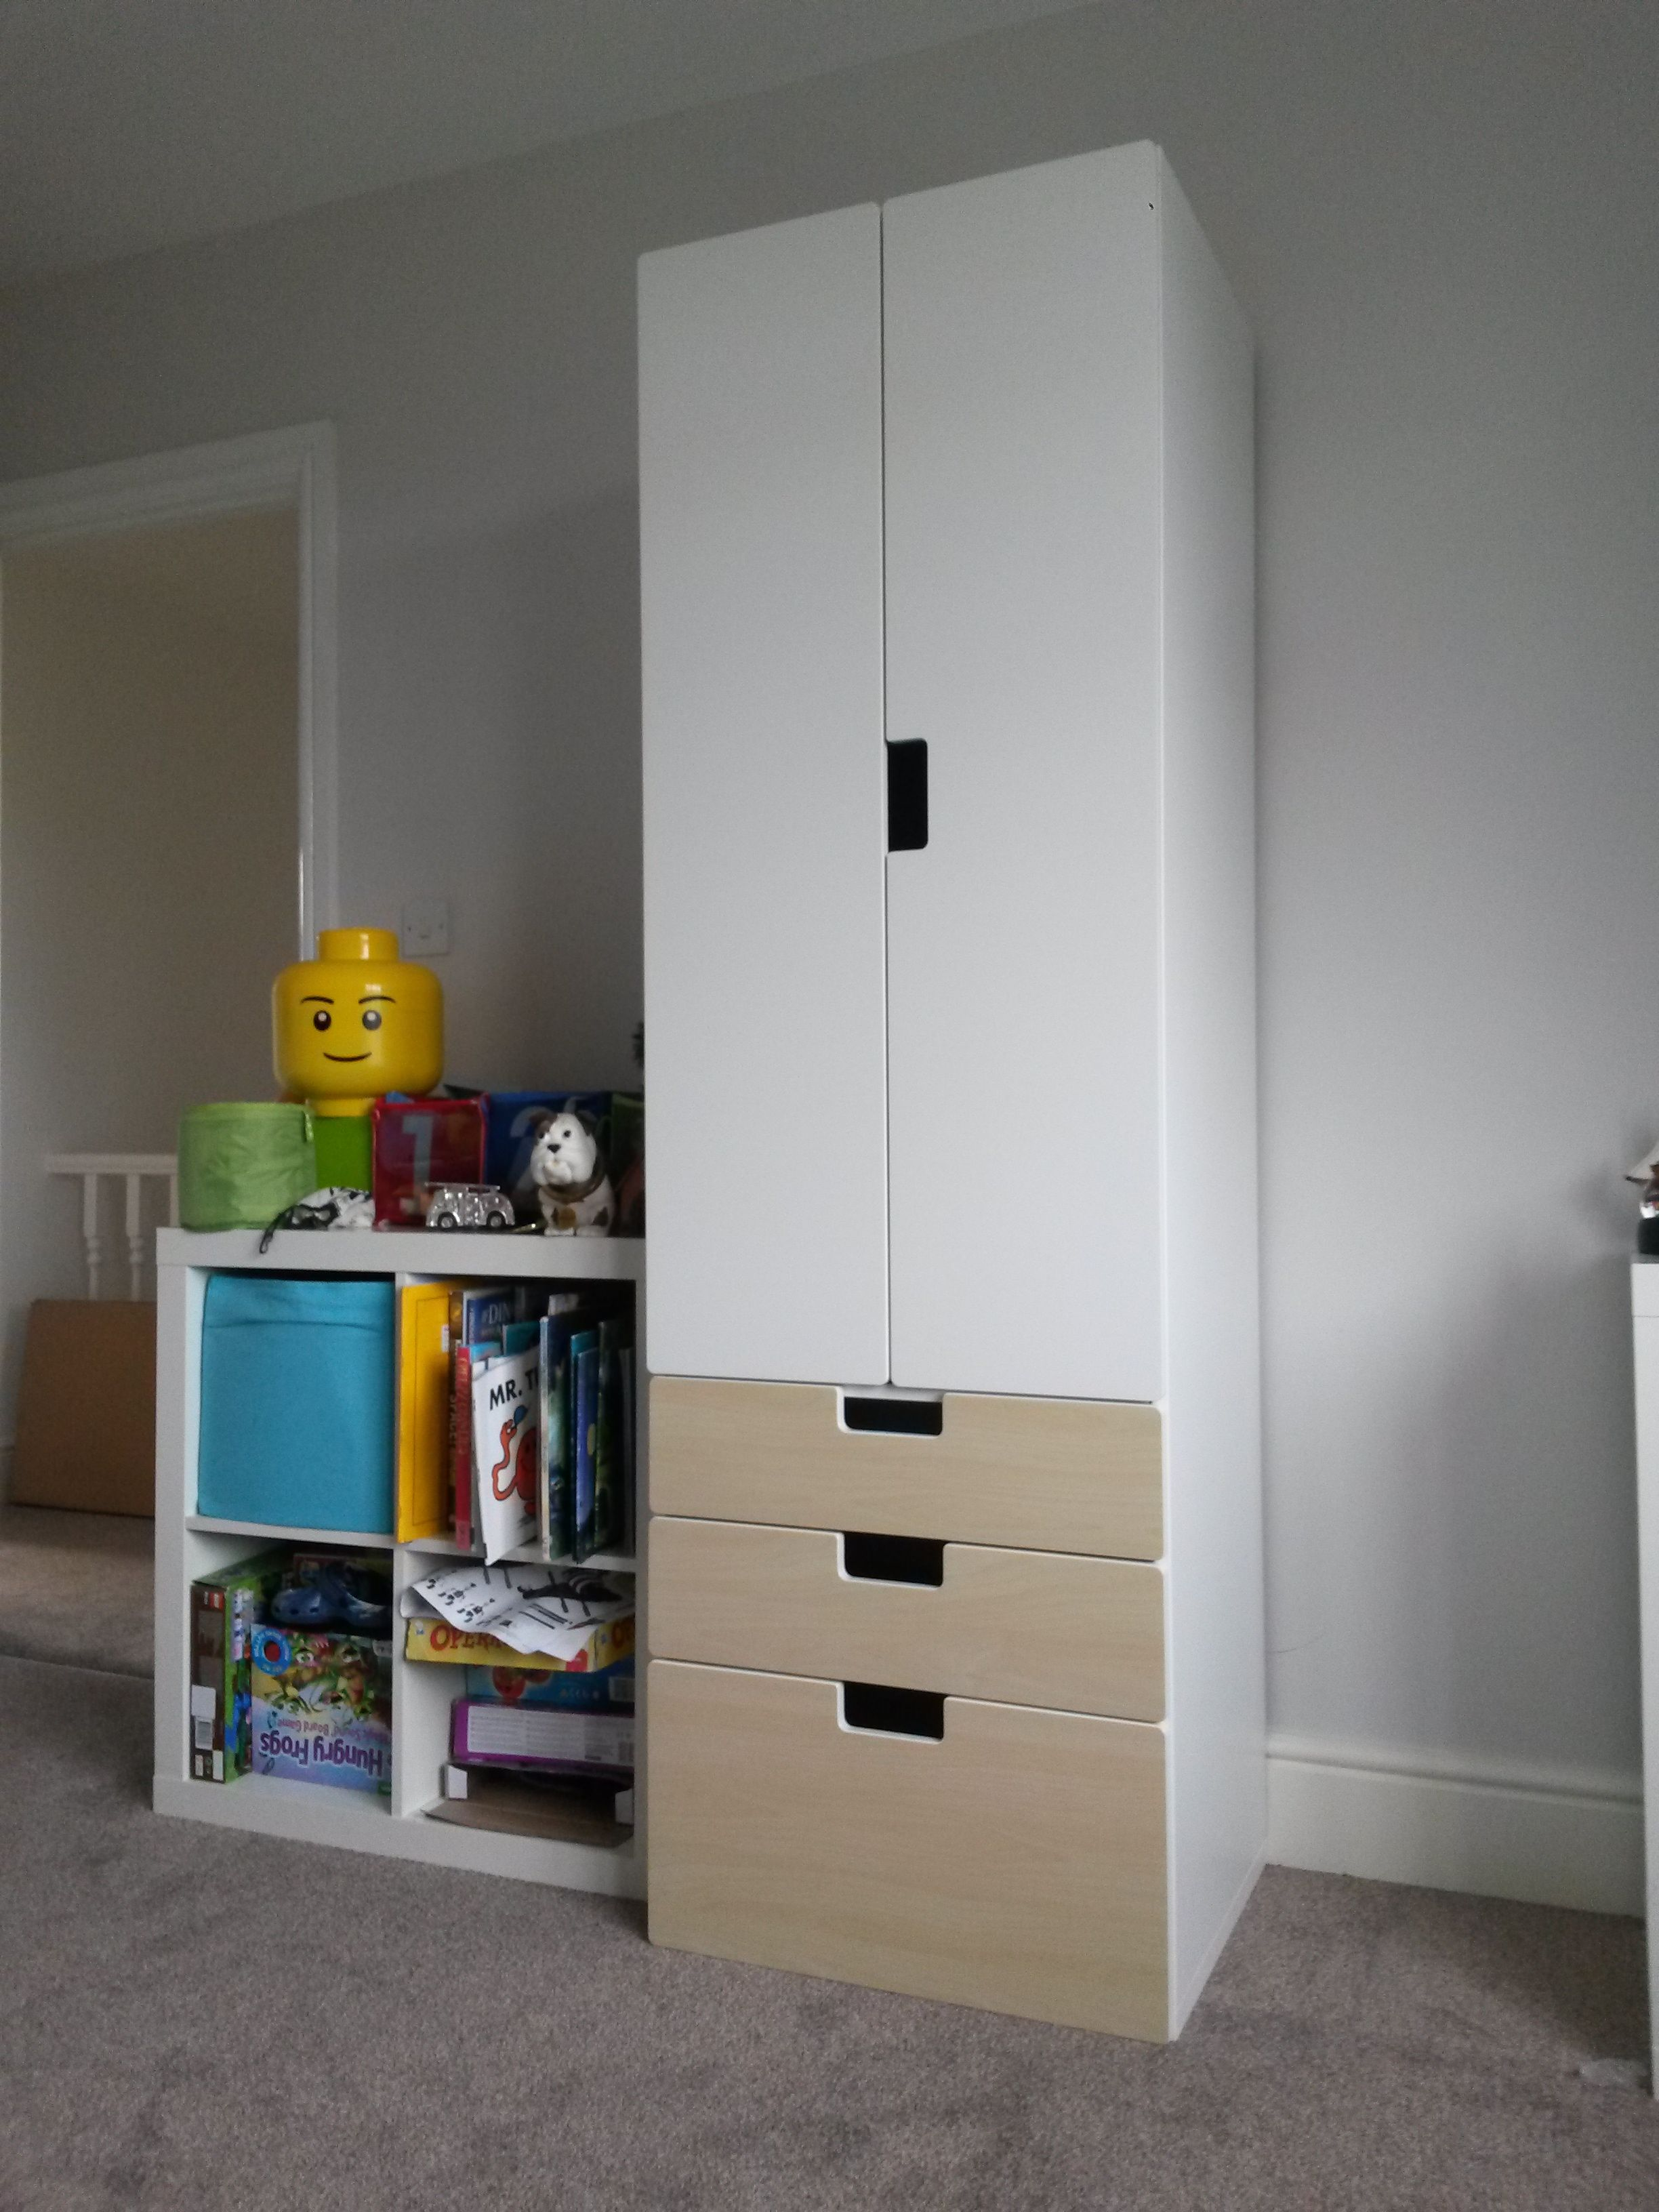 Ikéa Stuva Ikea Stuva Wardrobe And Drawer Combo Ikea Ideas Furniture